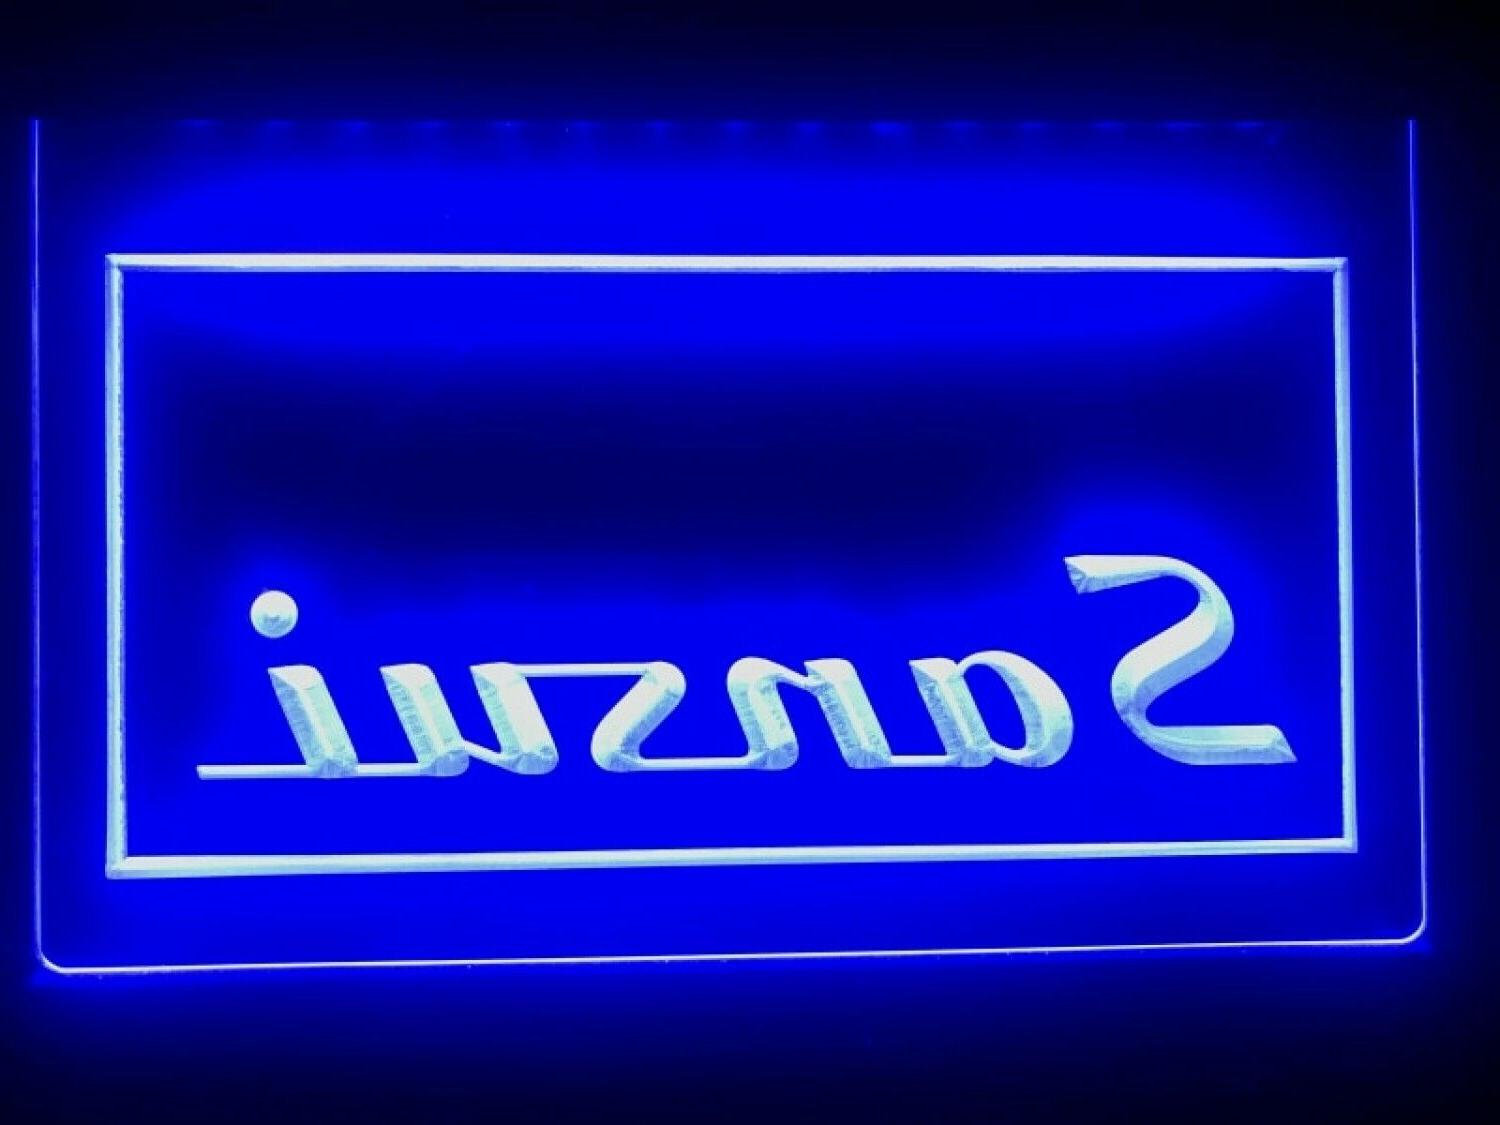 Sansui Home Theater Audio System LED Neon Light Sign 30x20 c